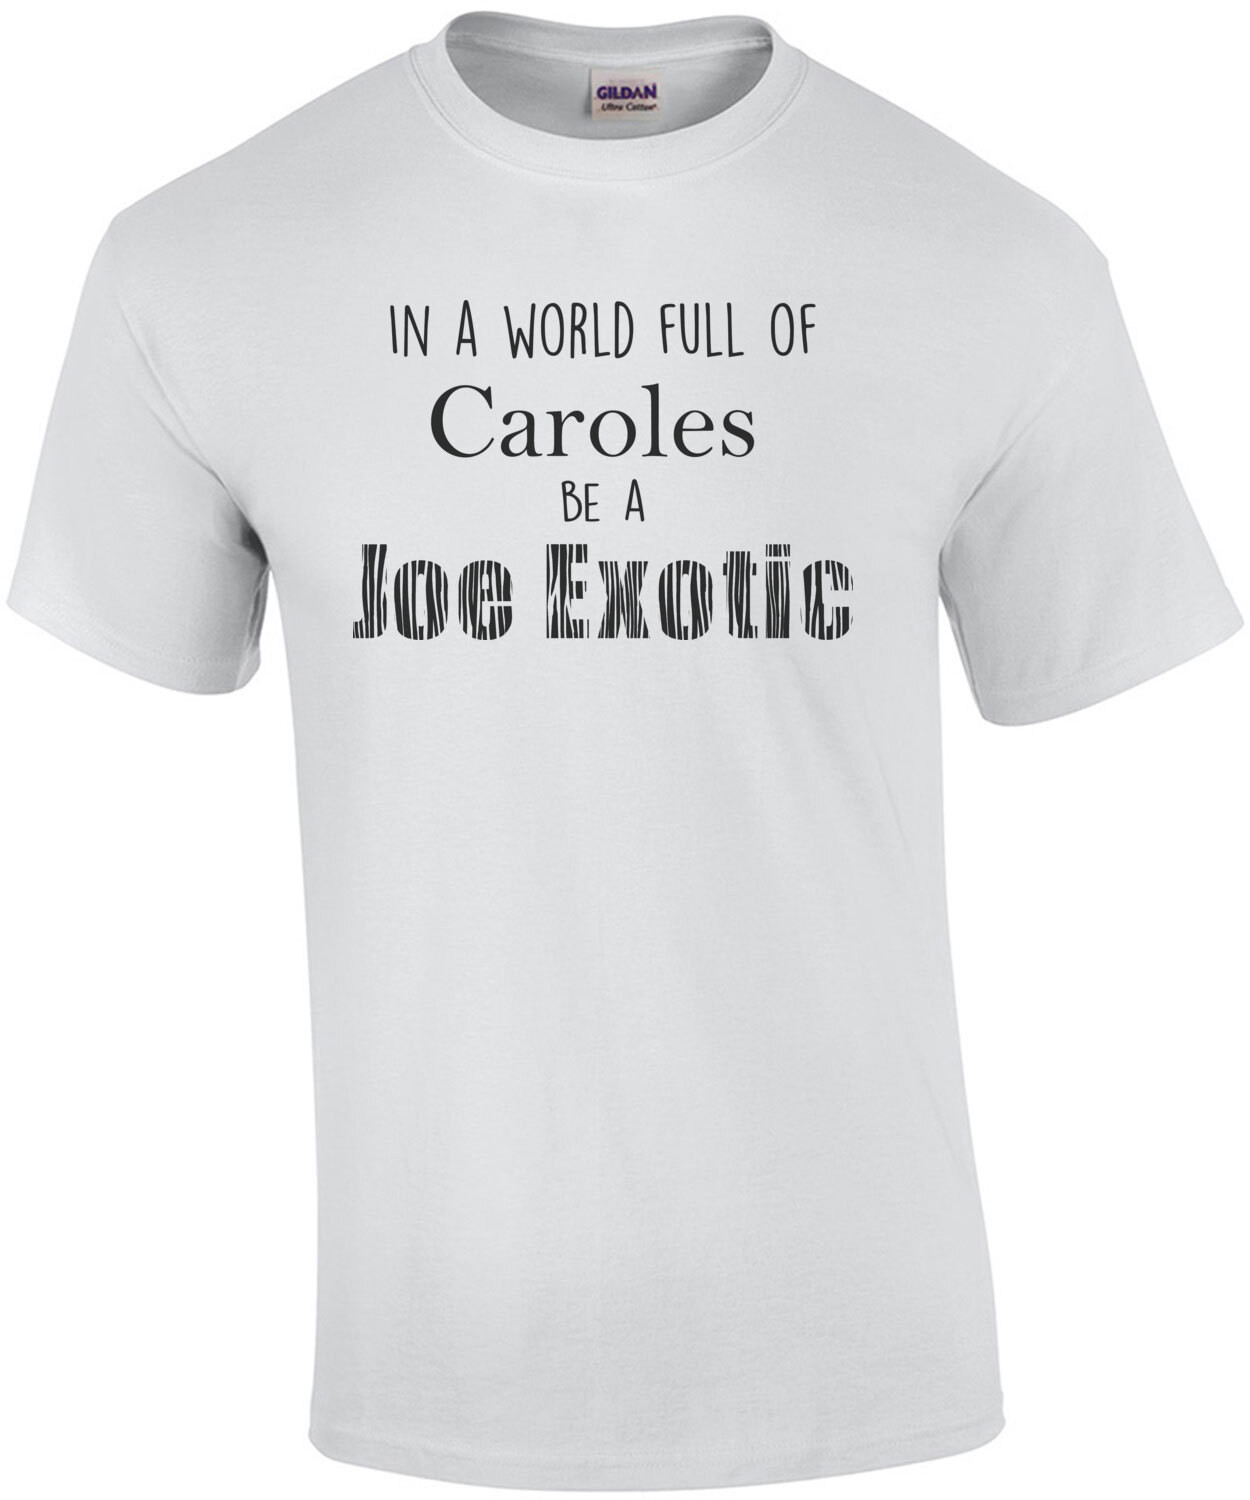 In a world full of Caroles, be a Joe Exotic Cool Tiger King Shirt